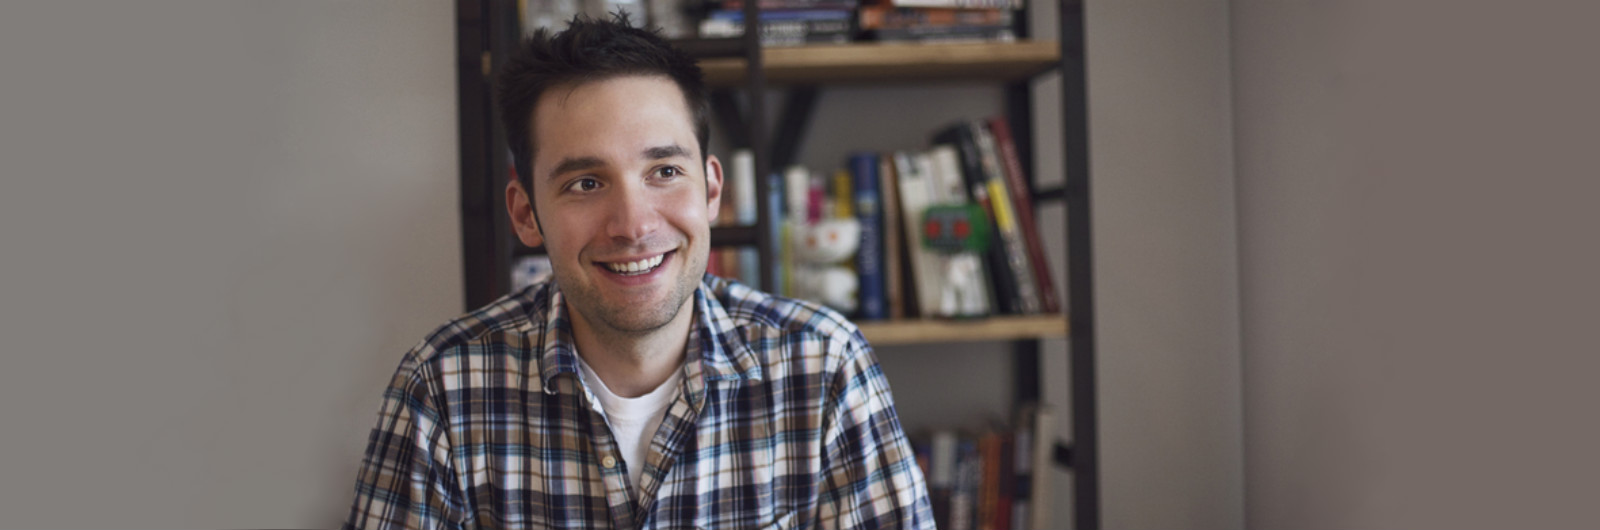 Alexis Ohanian, Founder of Reddit